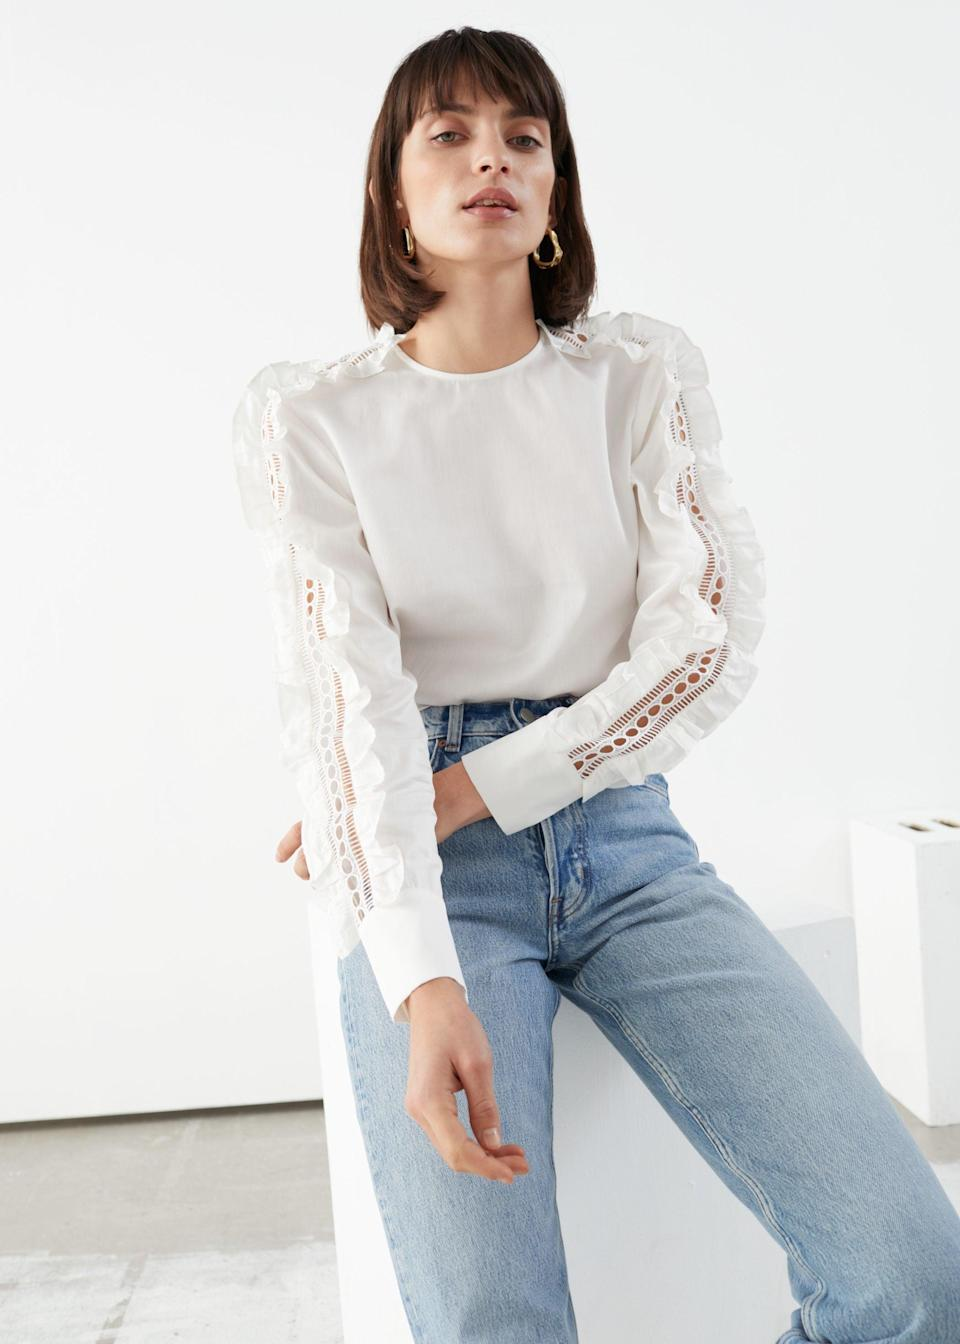 """<br> <br> <strong>& Other Stories</strong> Frilled Embroidery Top, $, available at <a href=""""https://go.skimresources.com/?id=30283X879131&url=https%3A%2F%2Fwww.stories.com%2Fen_usd%2Fclothing%2Ftops%2Fproduct.frilled-embroidery-top-white.0845297001.html"""" rel=""""nofollow noopener"""" target=""""_blank"""" data-ylk=""""slk:& Other Stories"""" class=""""link rapid-noclick-resp"""">& Other Stories</a>"""